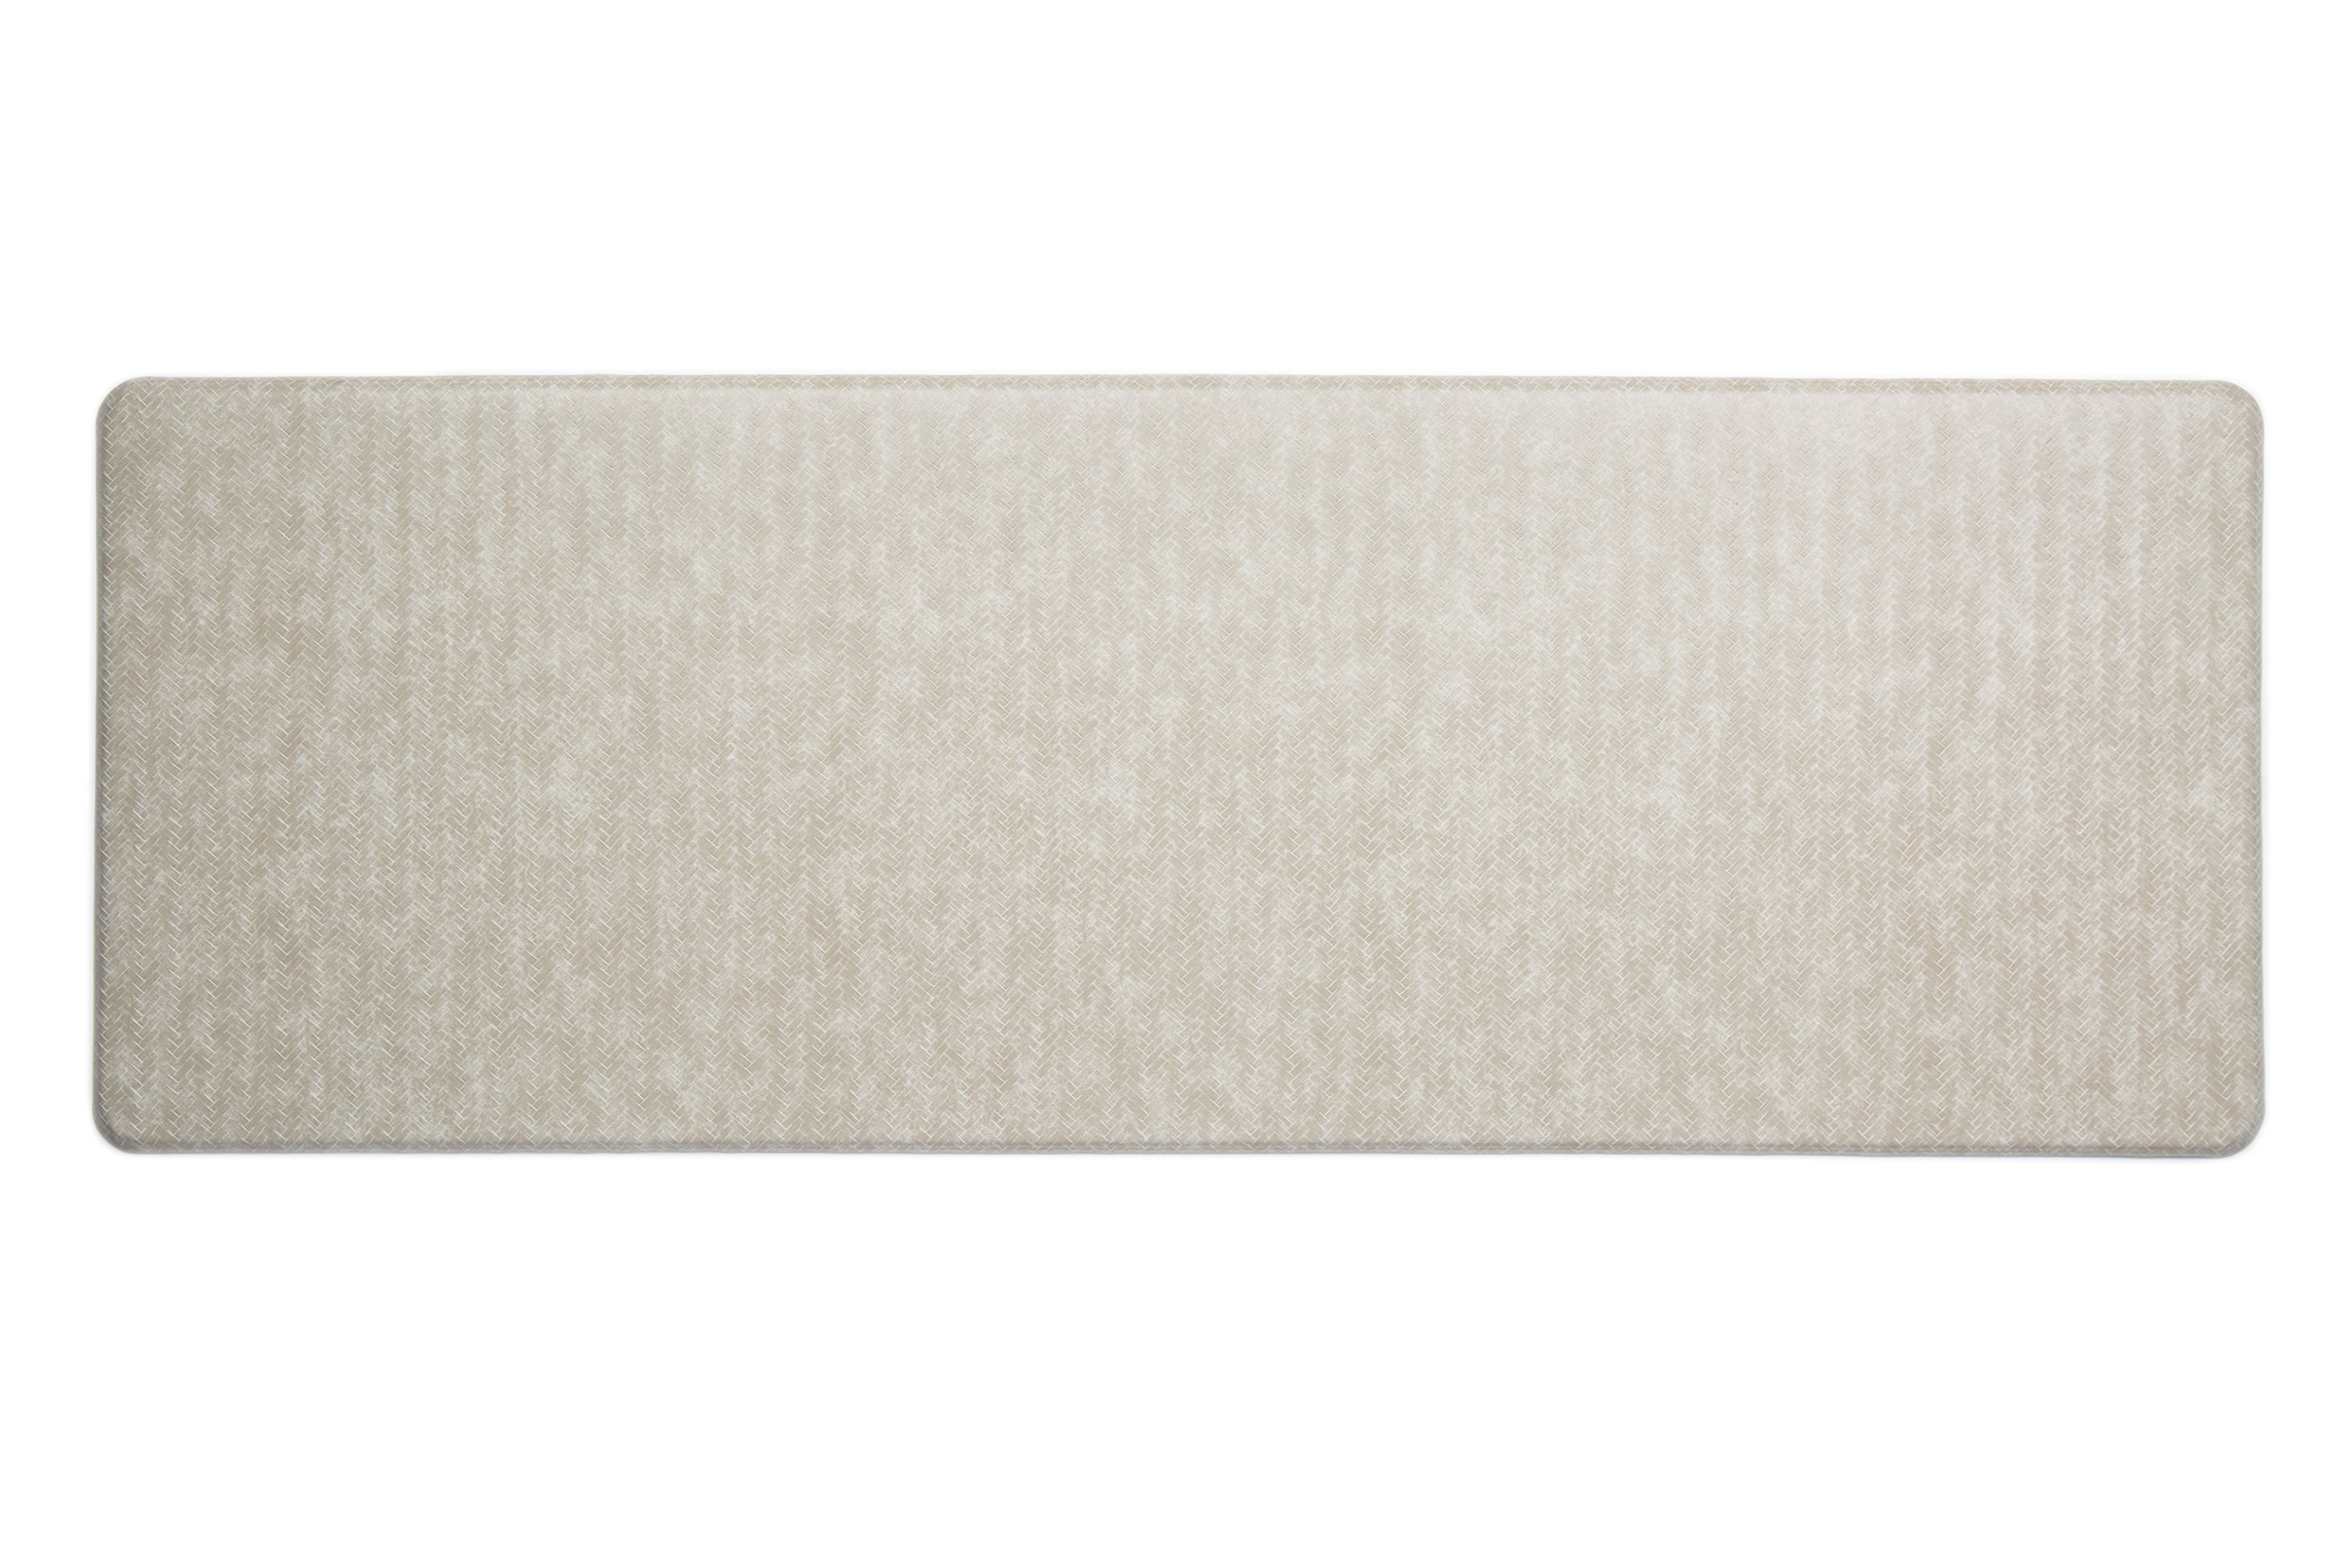 Imprint Cumulus9 Kitchen Mat Chevron Series Island Area Runner 26 in. x 72 in. x 5/8 in. Goose by Imprint (Image #1)